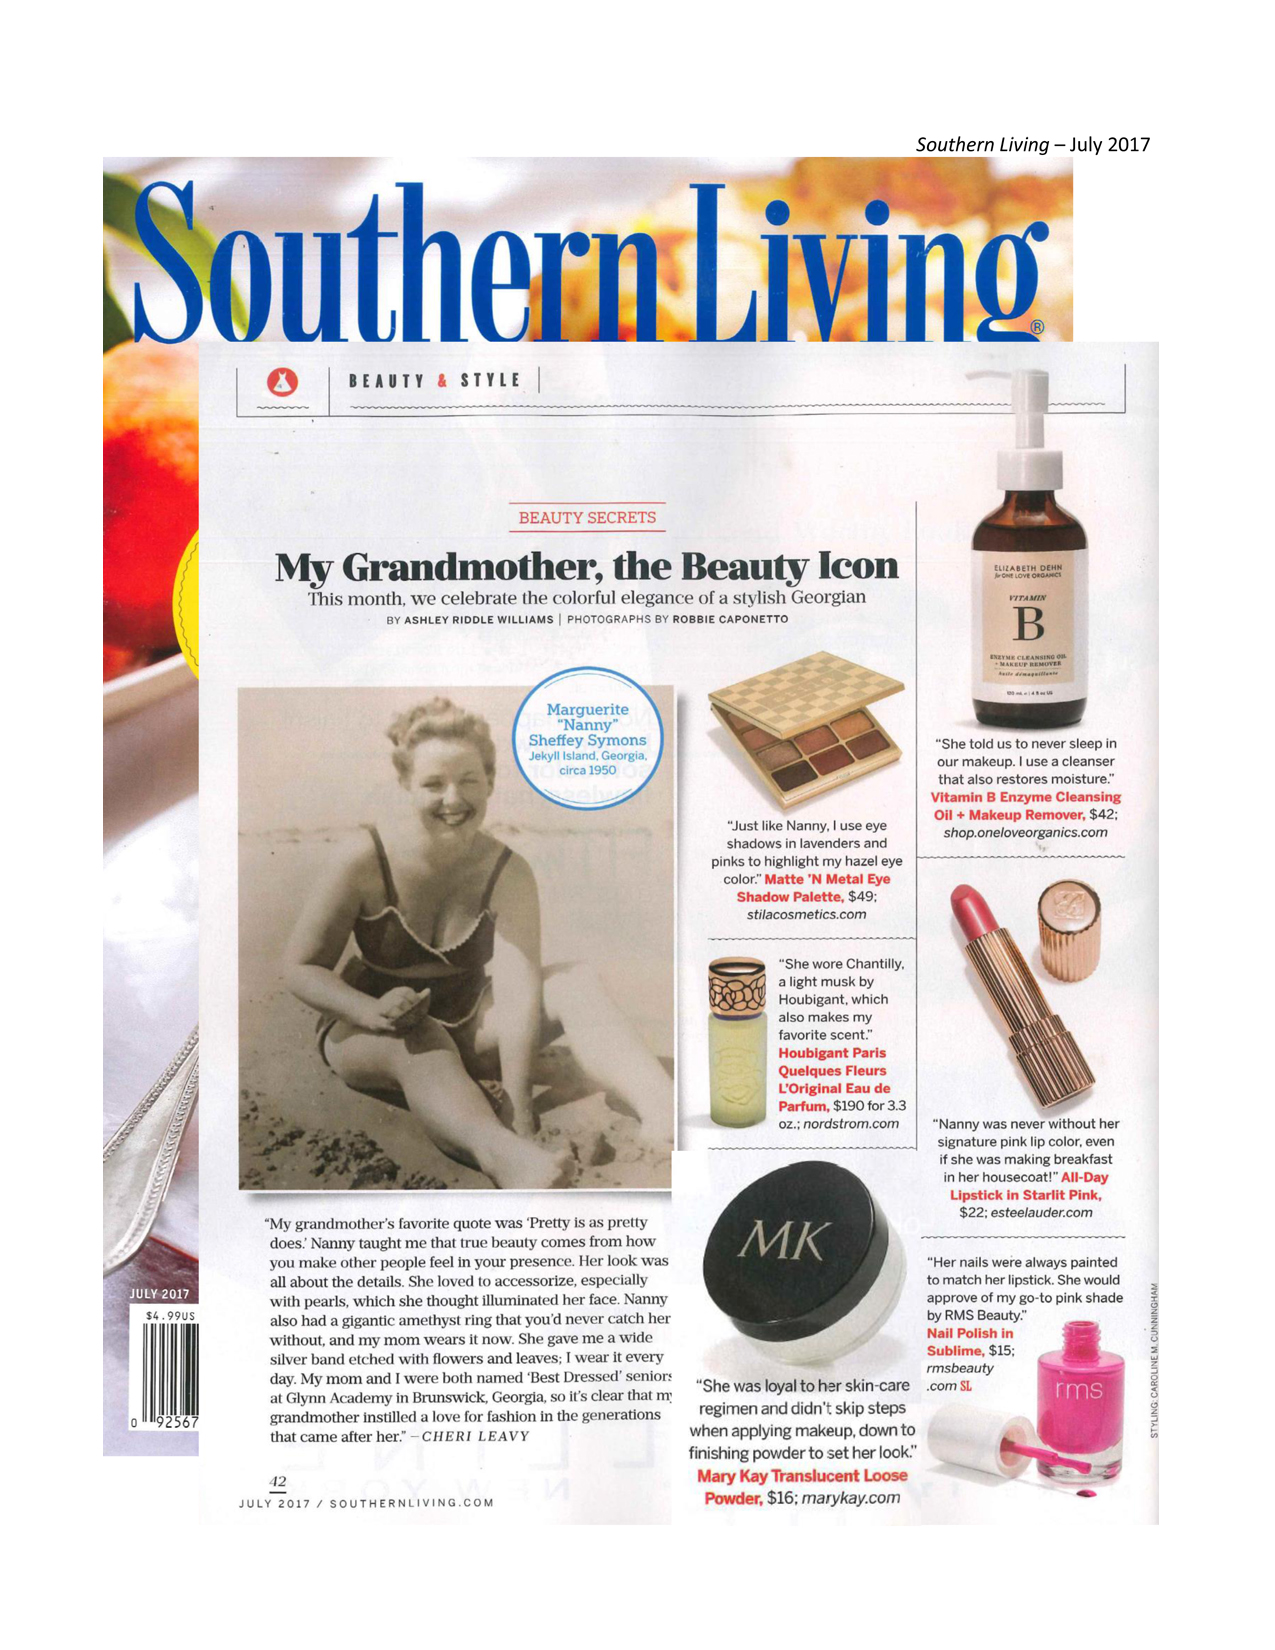 Southern living july 2017 Southern living change of address